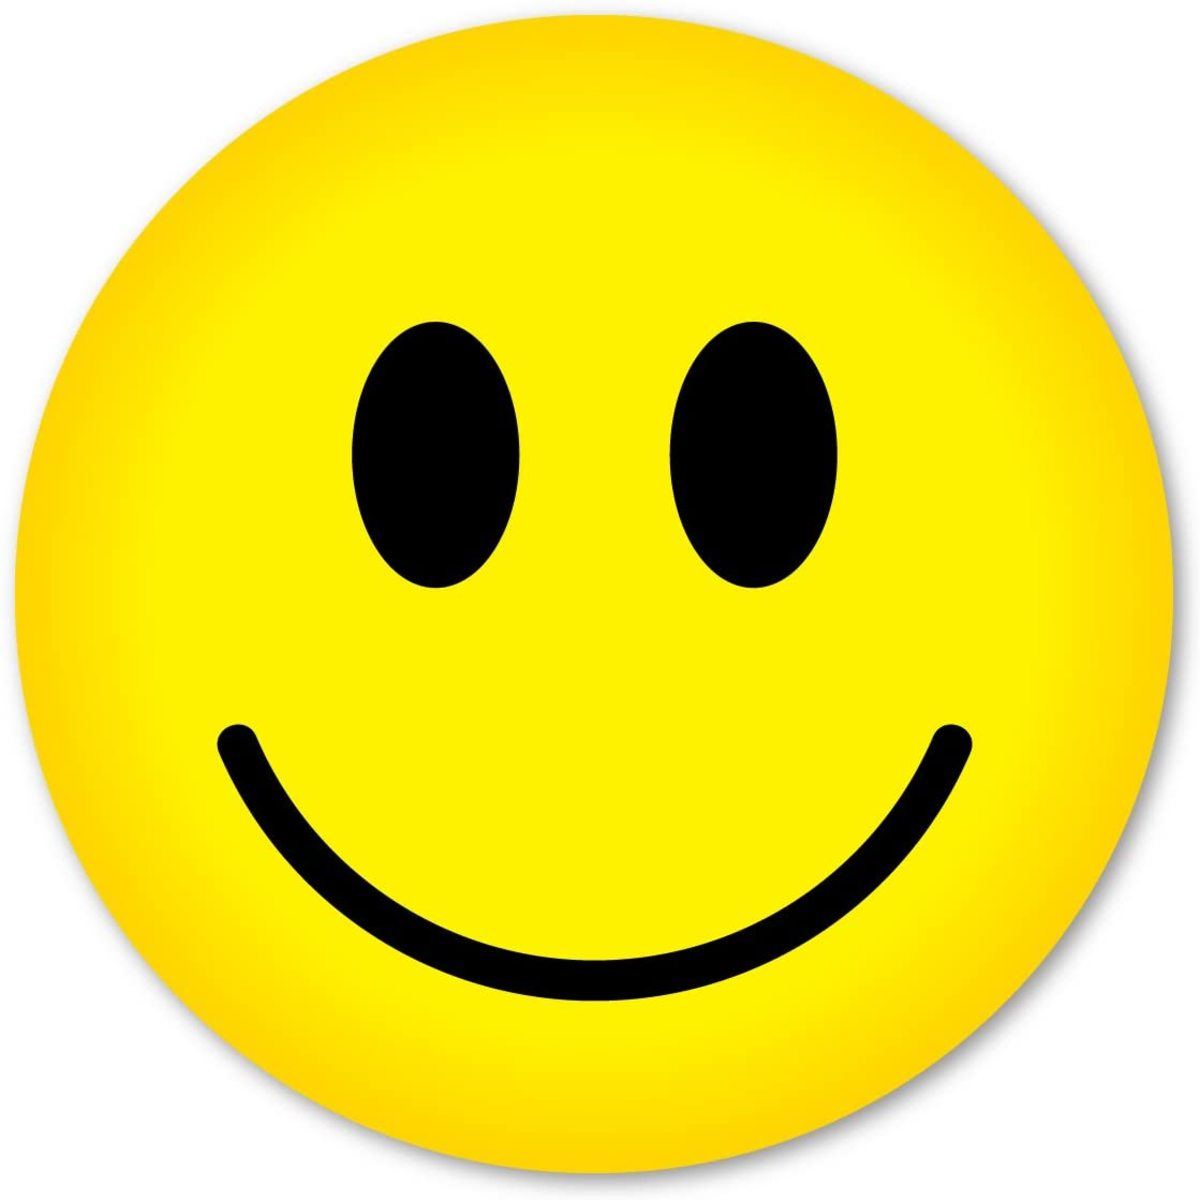 In 1963, Harvey Ball—a graphic artist and ad man from Worcester, Massachusetts—created the first smiley face.